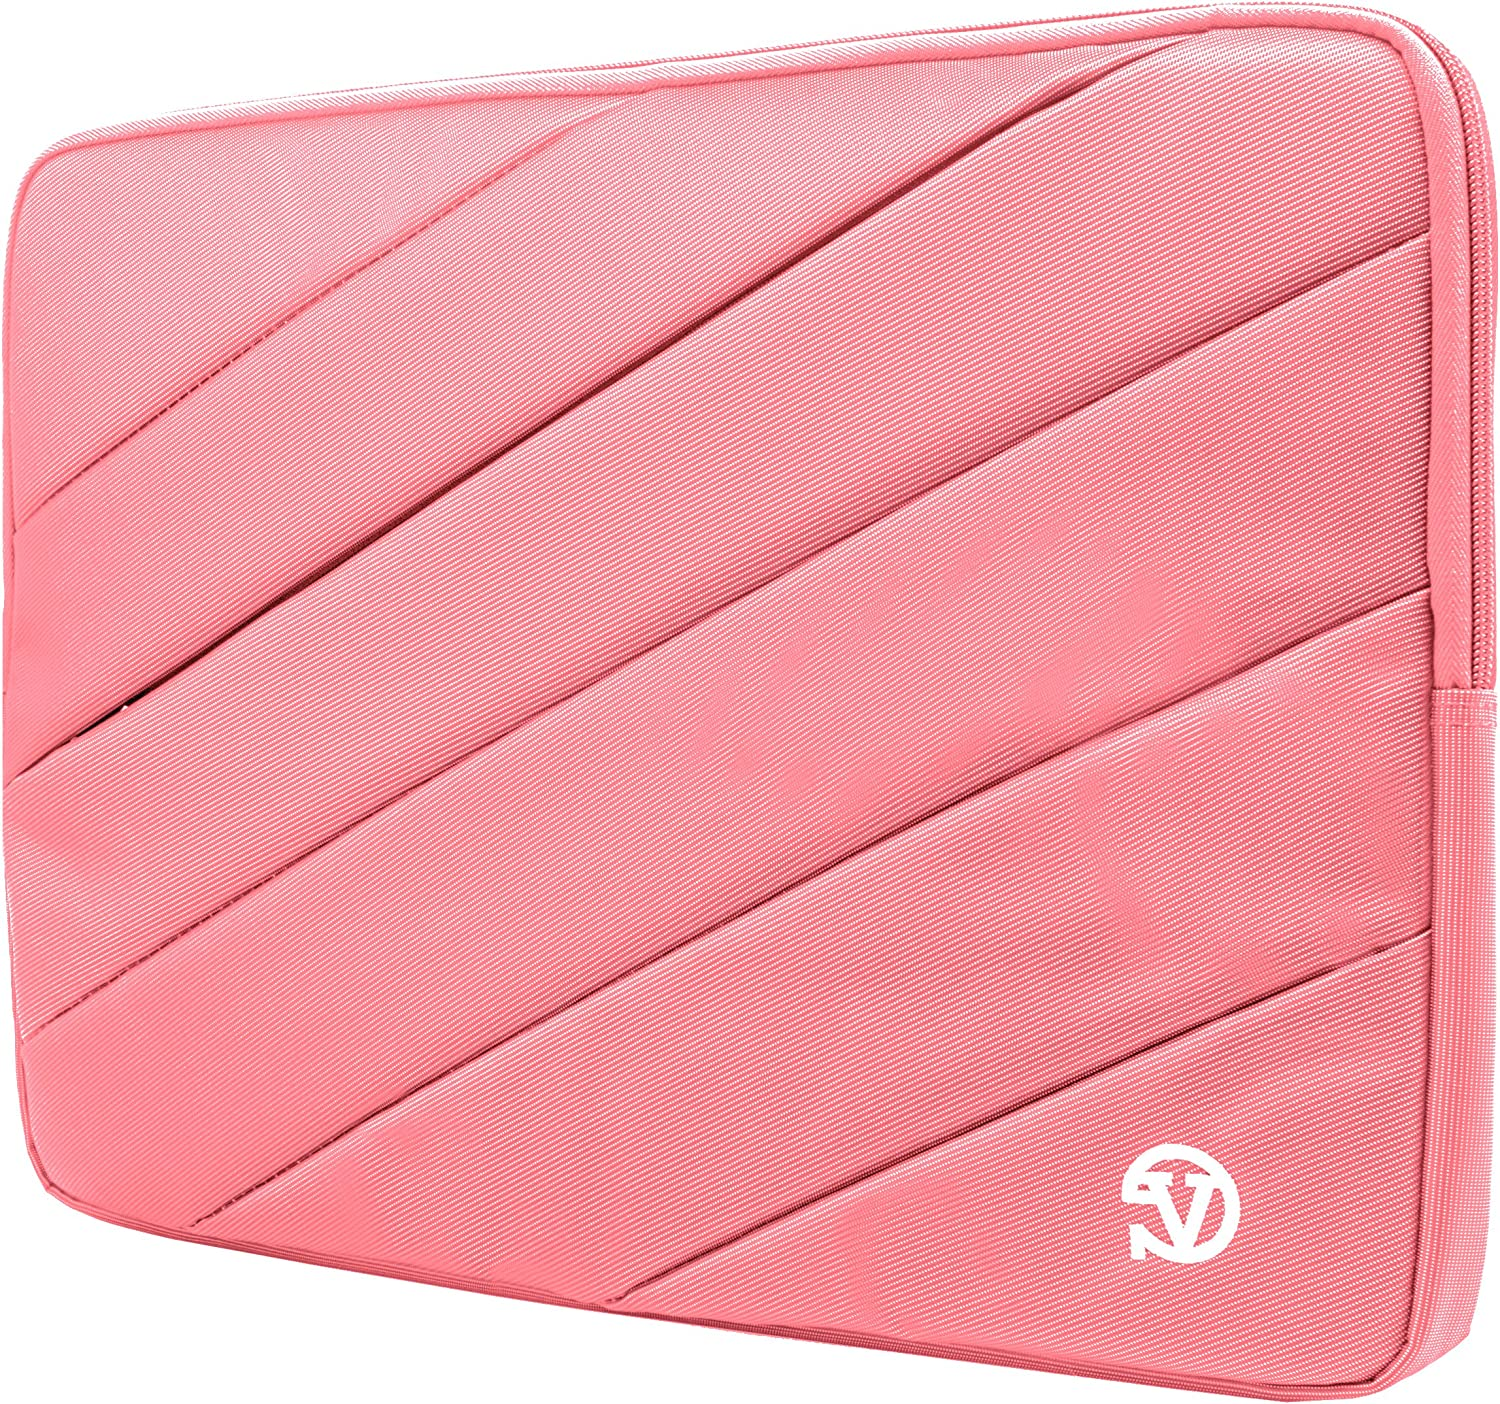 Protective Pink Shock Absorbing Laptop Sleeve for Dell Inspiron, Latitude, XPS, Precision, G3 G5 G7 15, Vostro, Alienware m15, m15 R2 14 to 15.6 inch